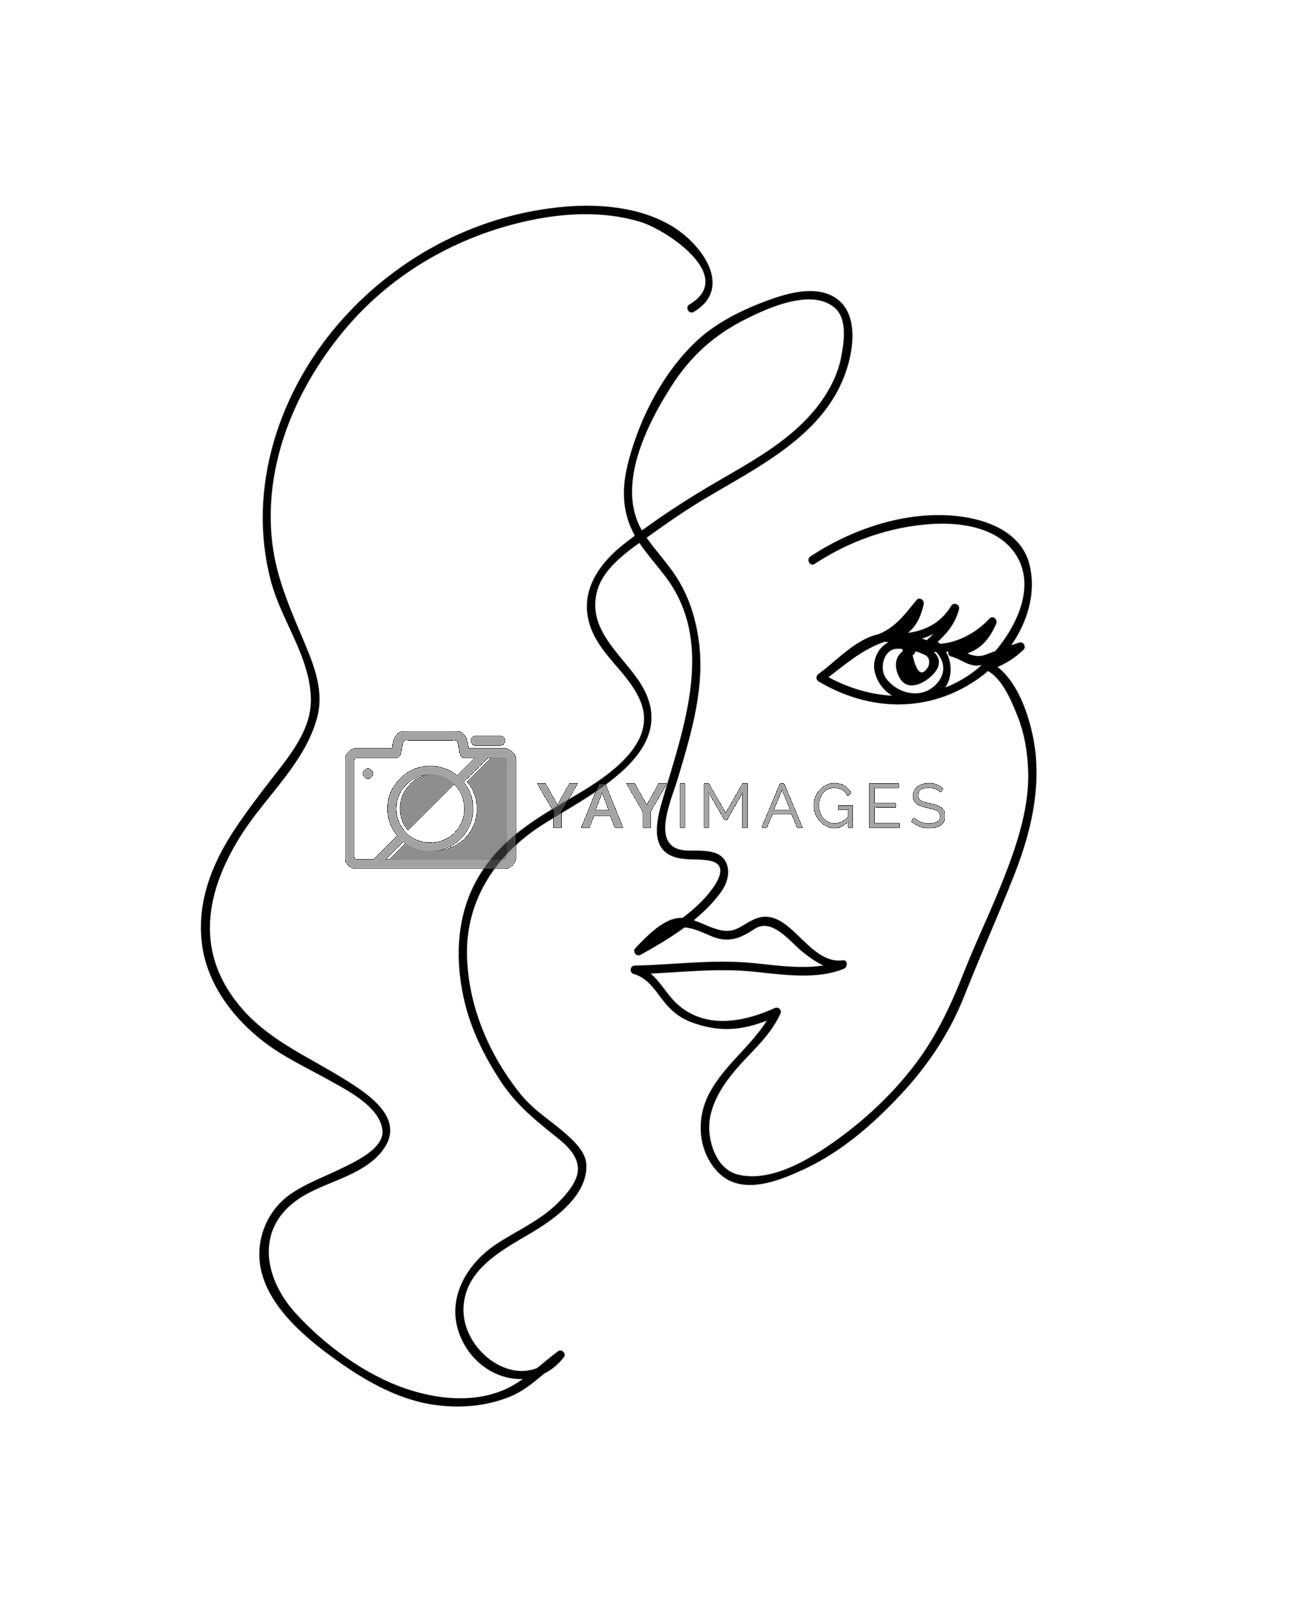 Abstract woman face with wavy hair. Black and white hand drawn line art. Outline vector illustration by ESSL